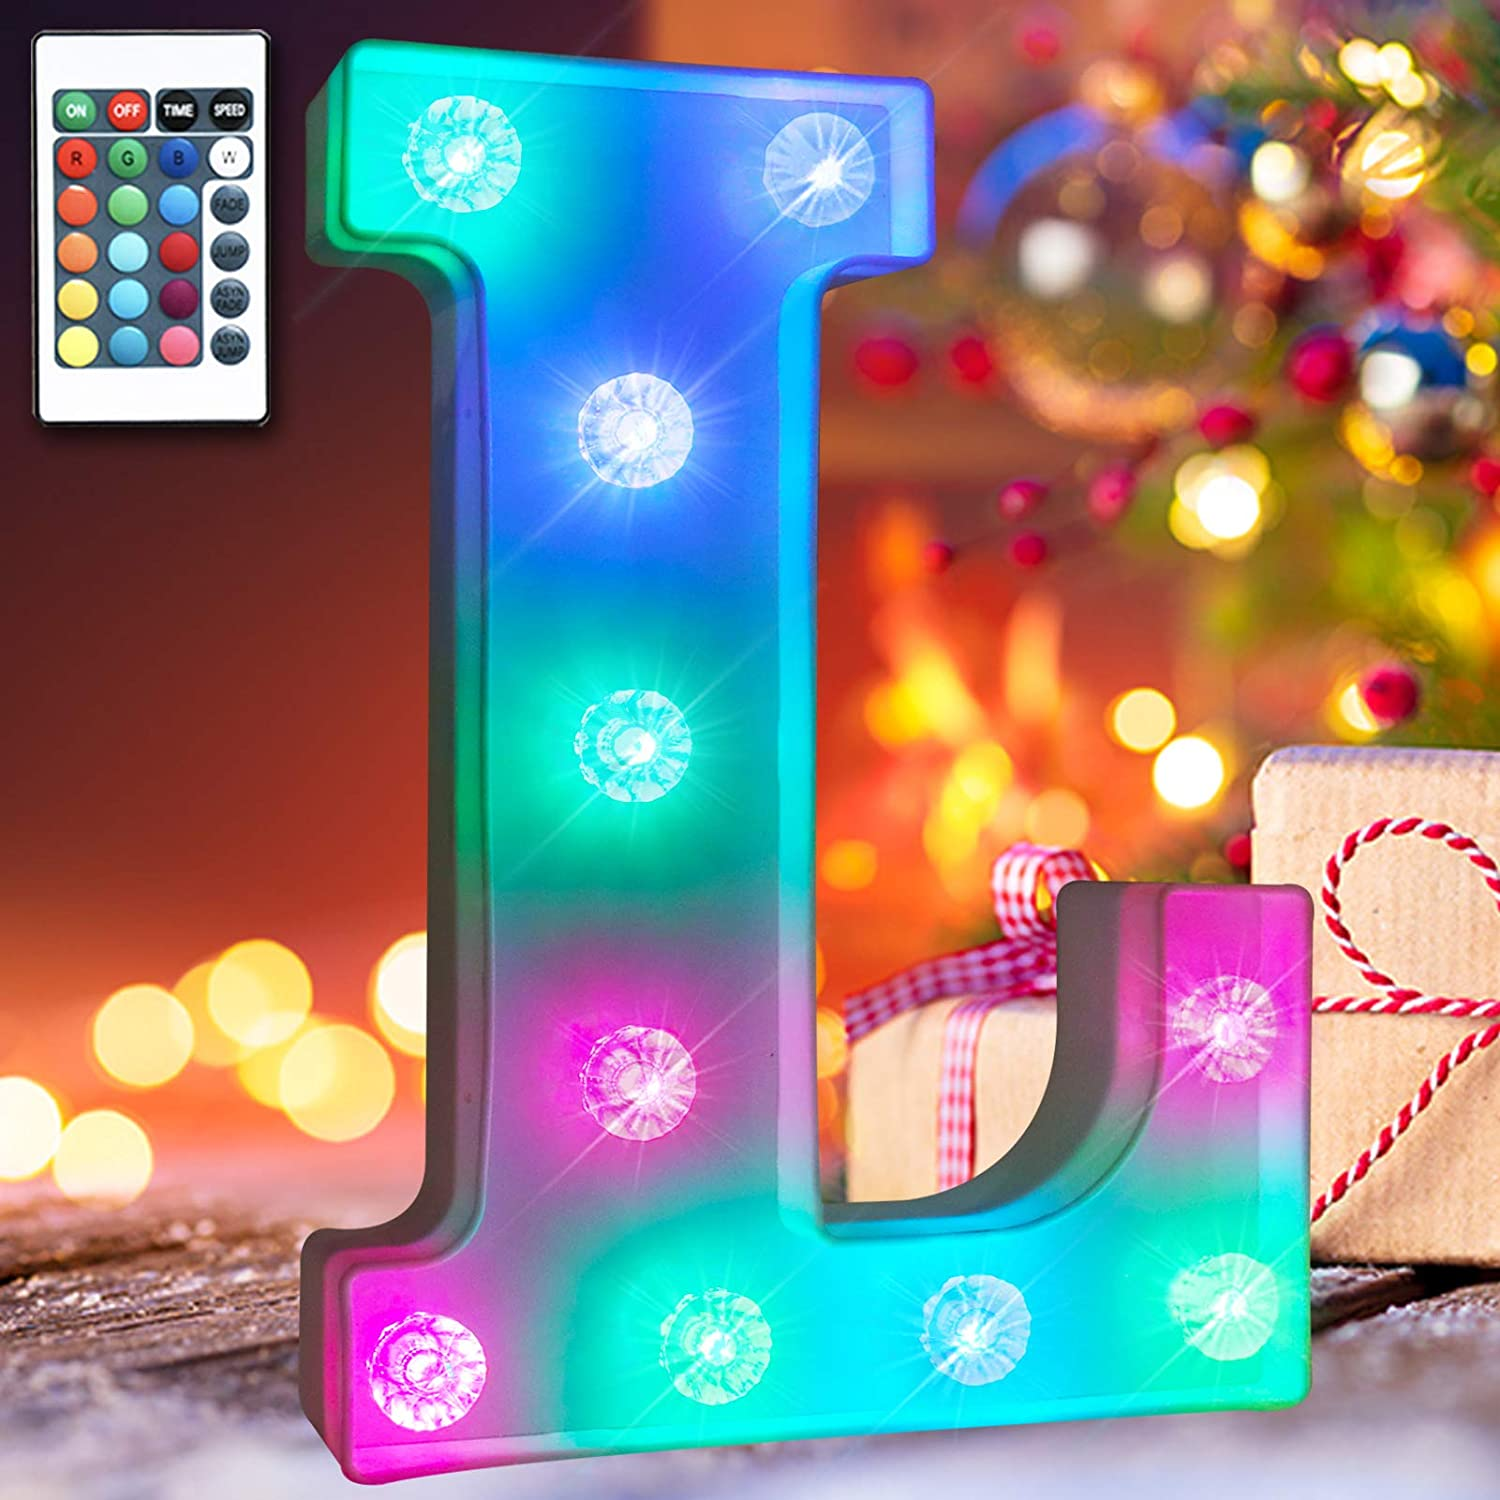 16 Color Changing Marquee Letter with Lights, Battery Power Remote Control Diamond Bulb Words Light Bar Signs Bedroom Decor for Teen Girls Wall Decals- RGB Letter L